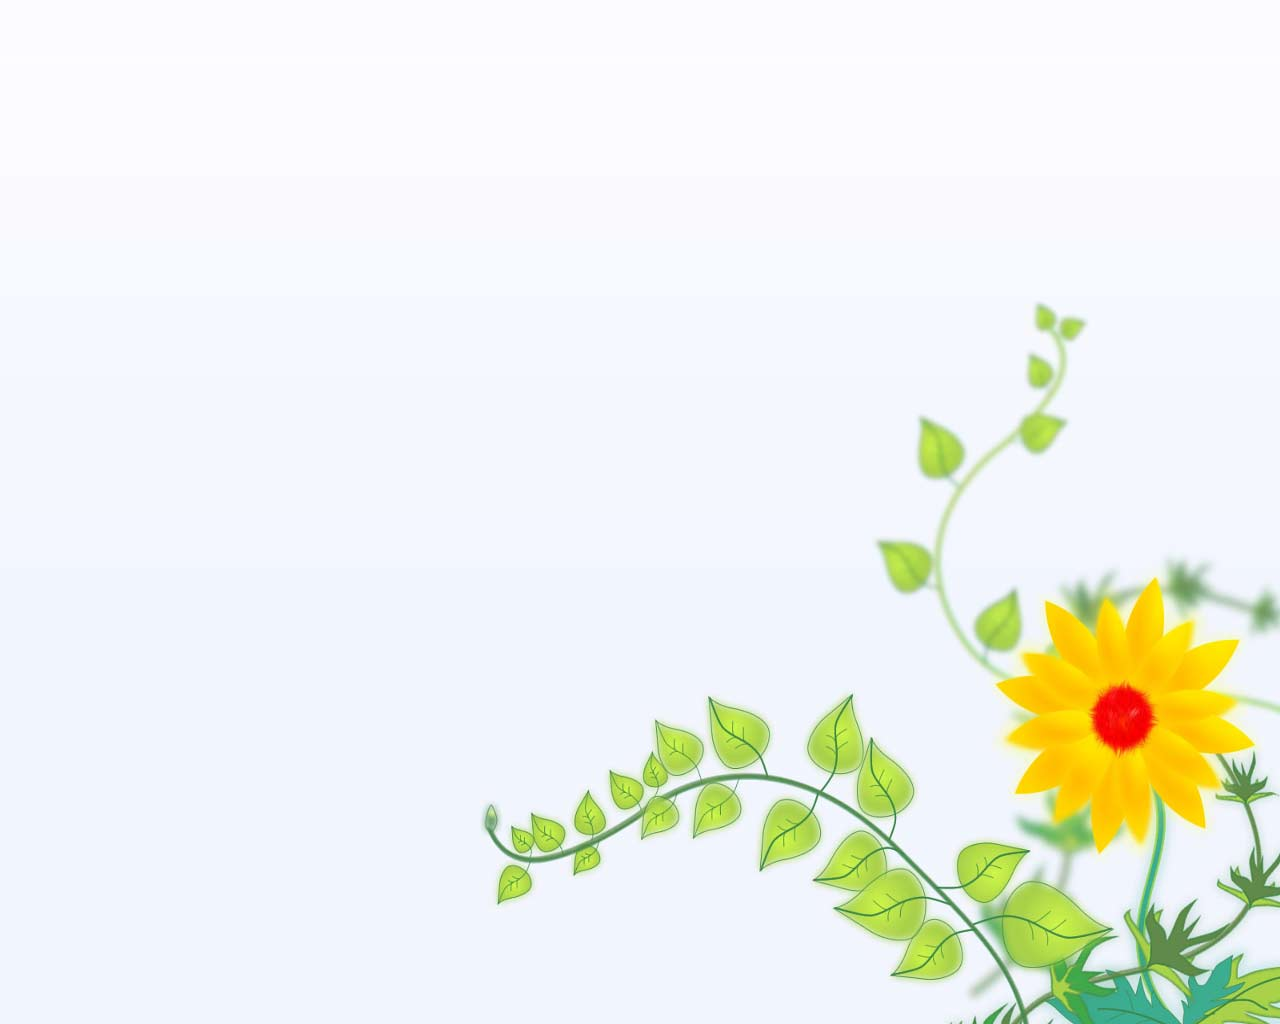 flower powerpoint templates gallery - templates example free download, Powerpoint templates